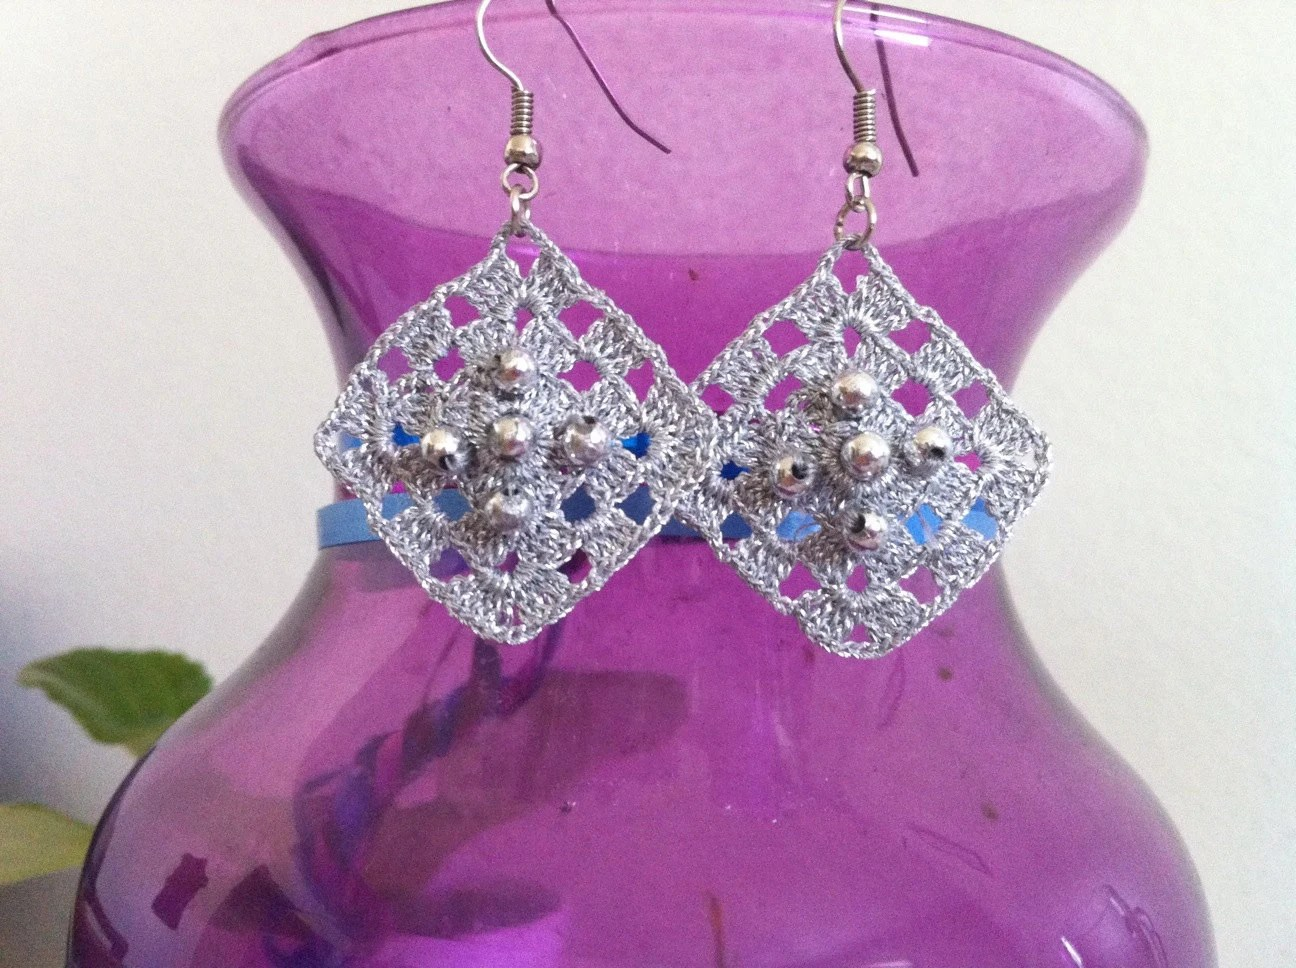 crochet earrings, crochet lacy earrings in silvery bright grey, jewelry women fashions, usa seller